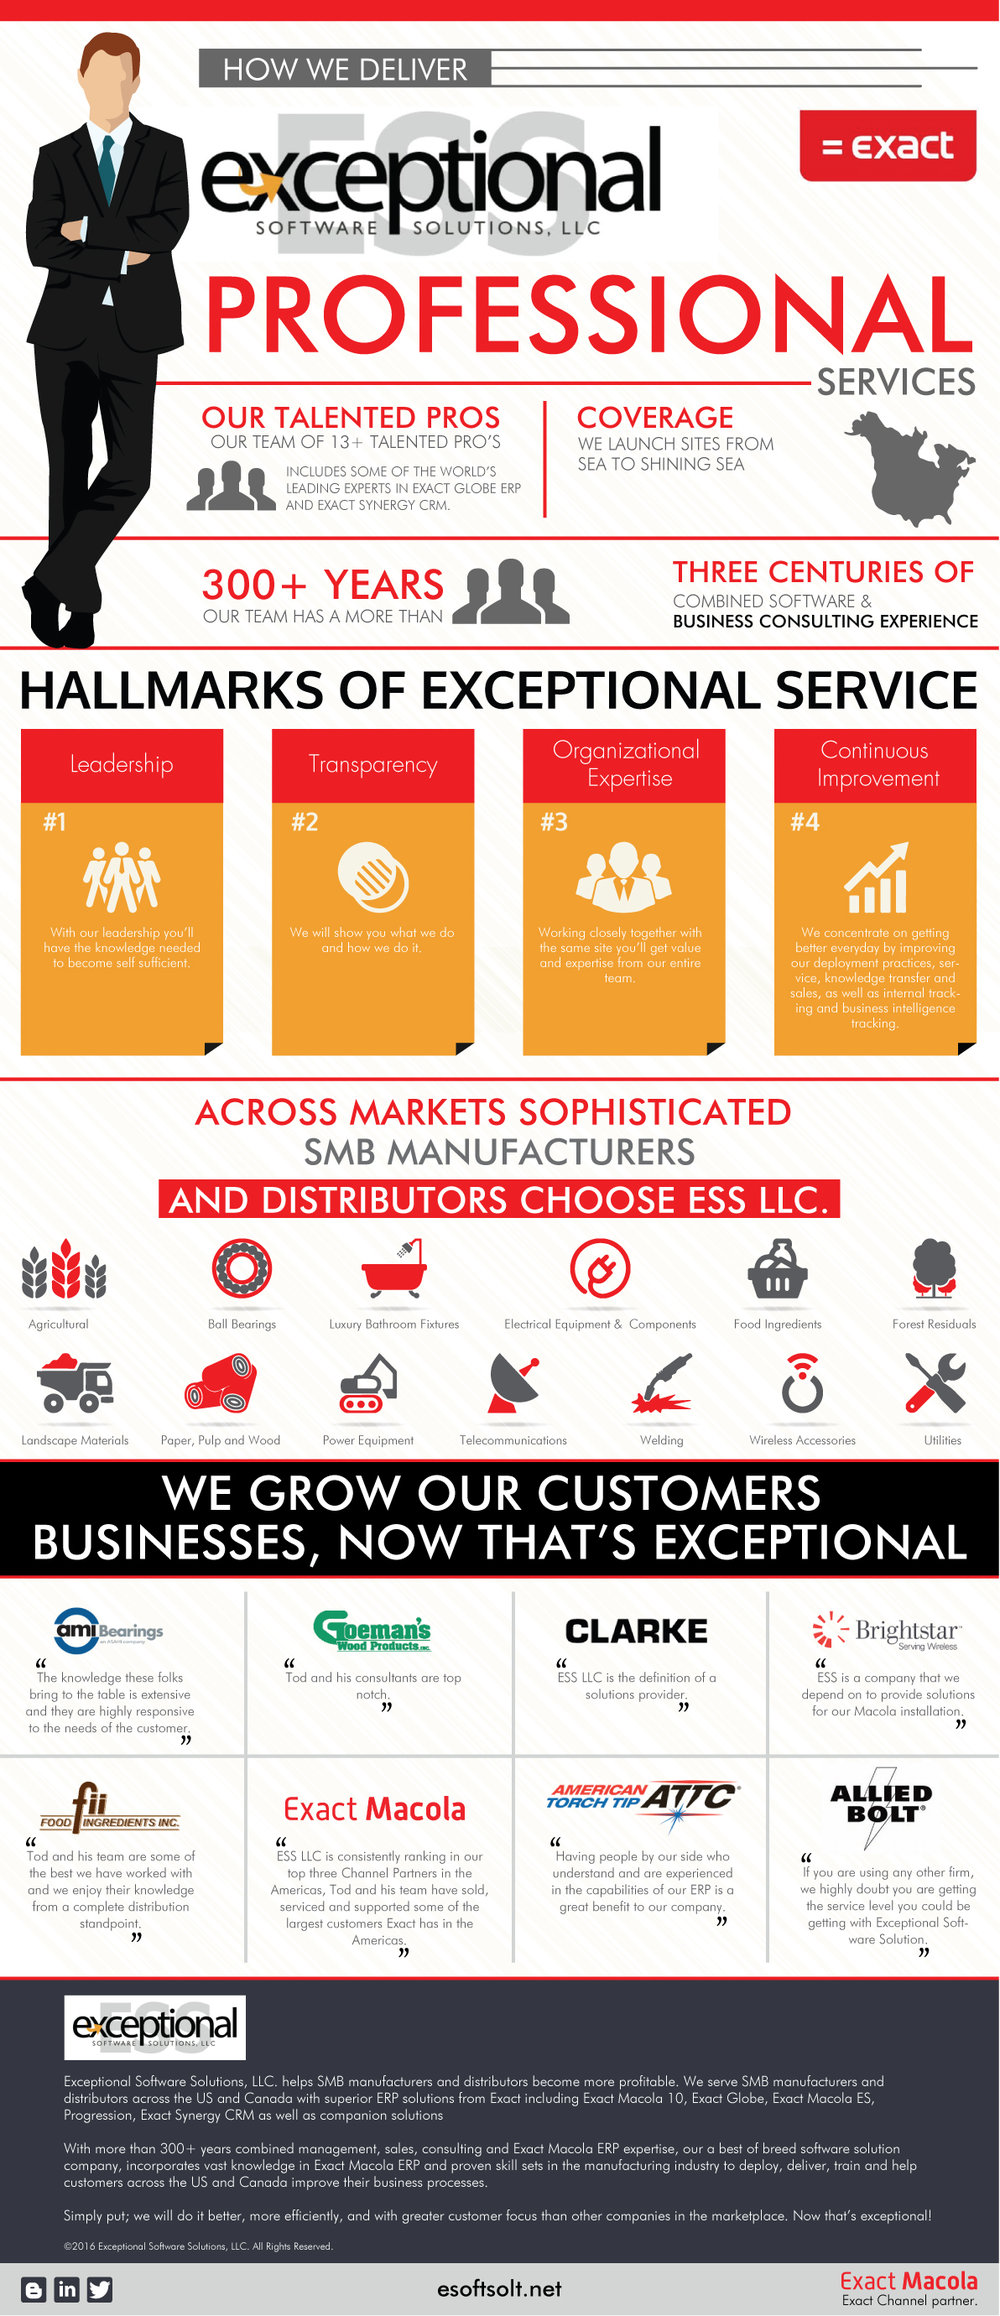 how ess deliver professional services -